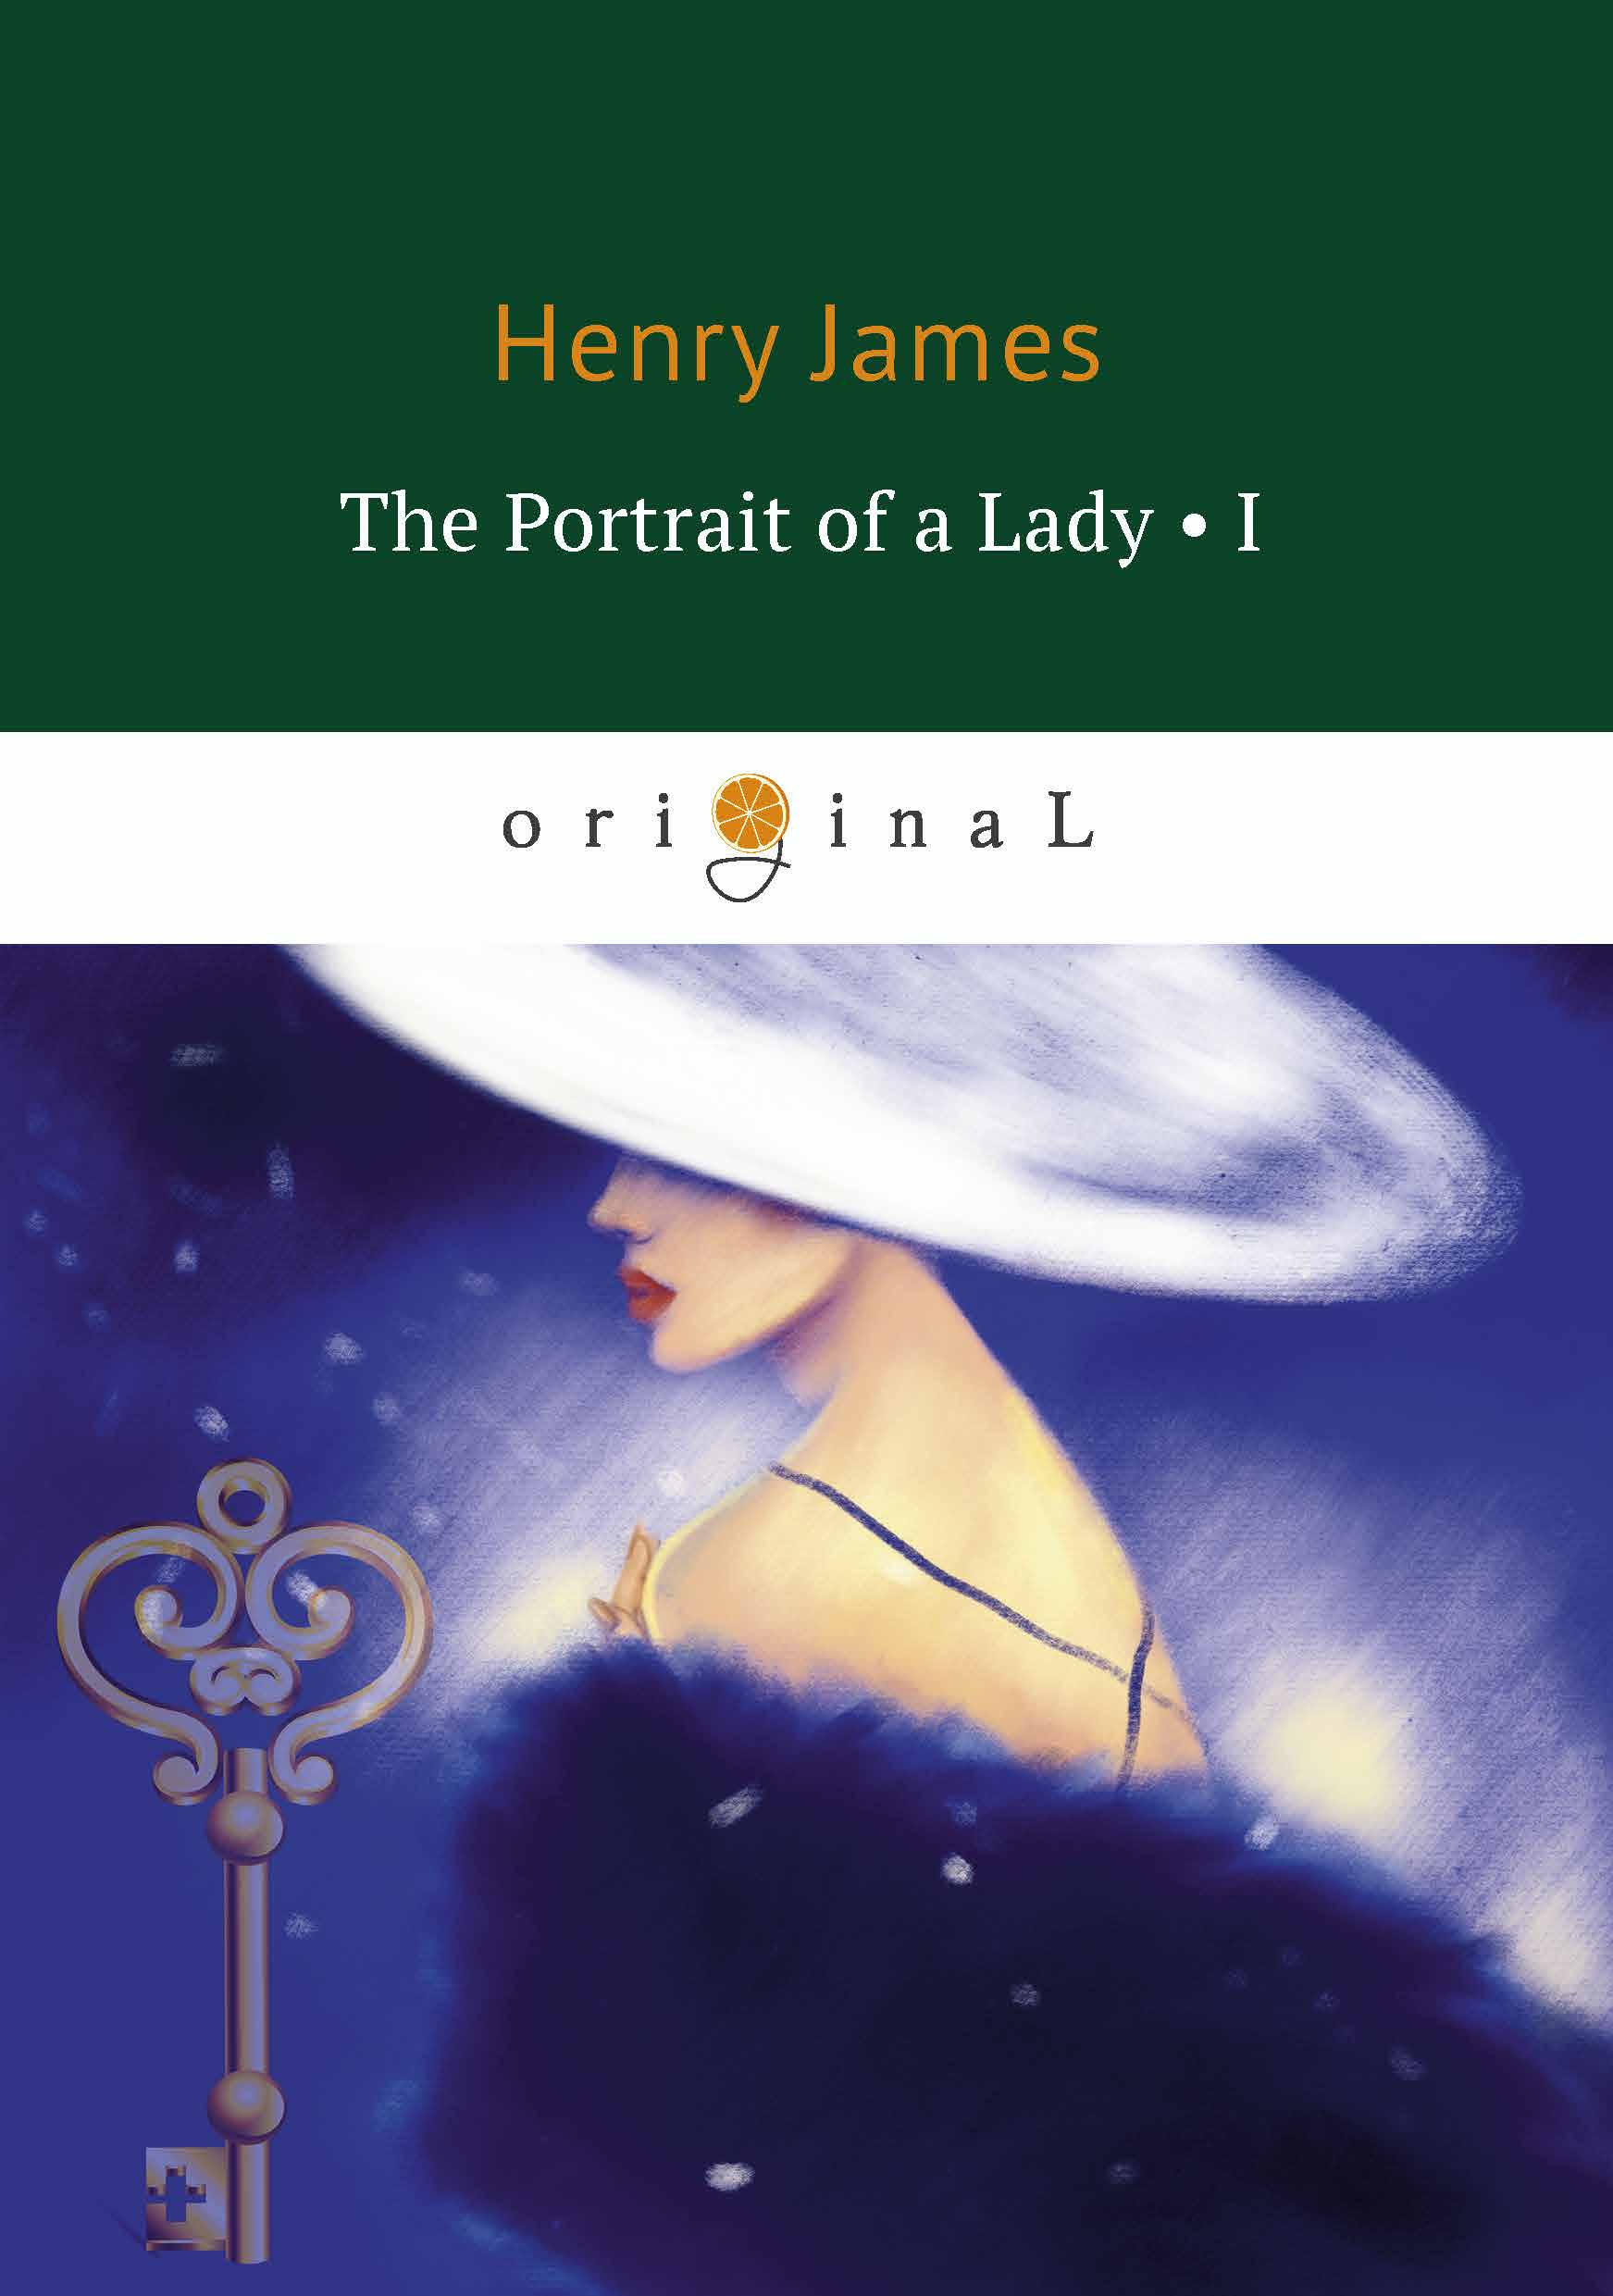 Henry James The Portrait of a Lady I greg zacharias w a companion to henry james